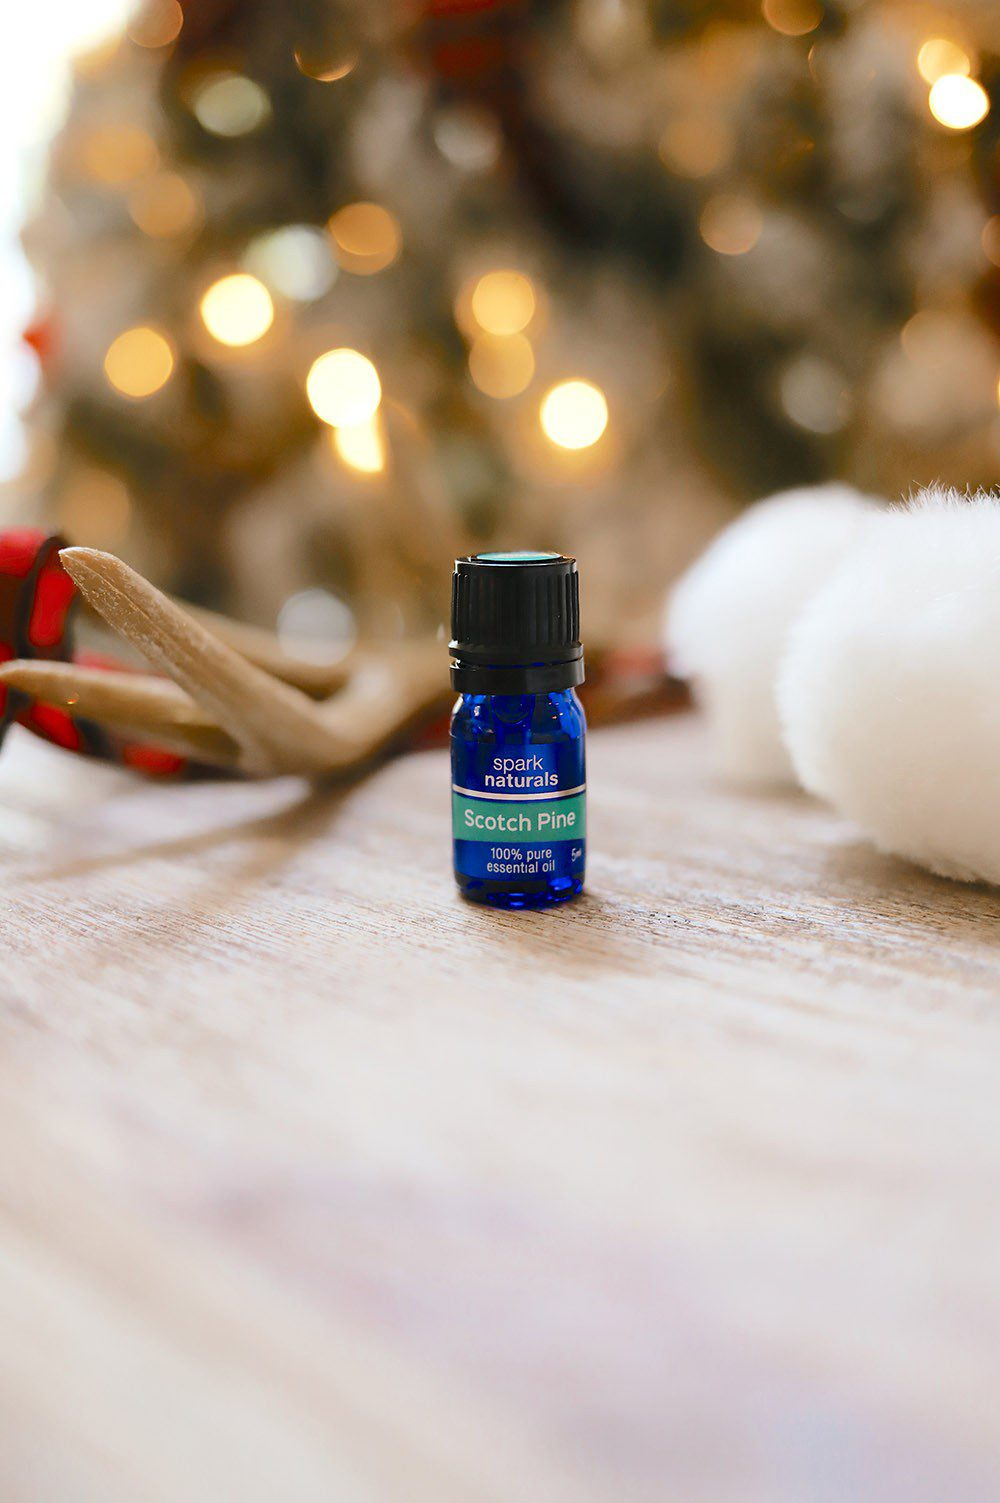 11 Christmas essential oil recipes to make spirits sparkle - Scots pine essential oil